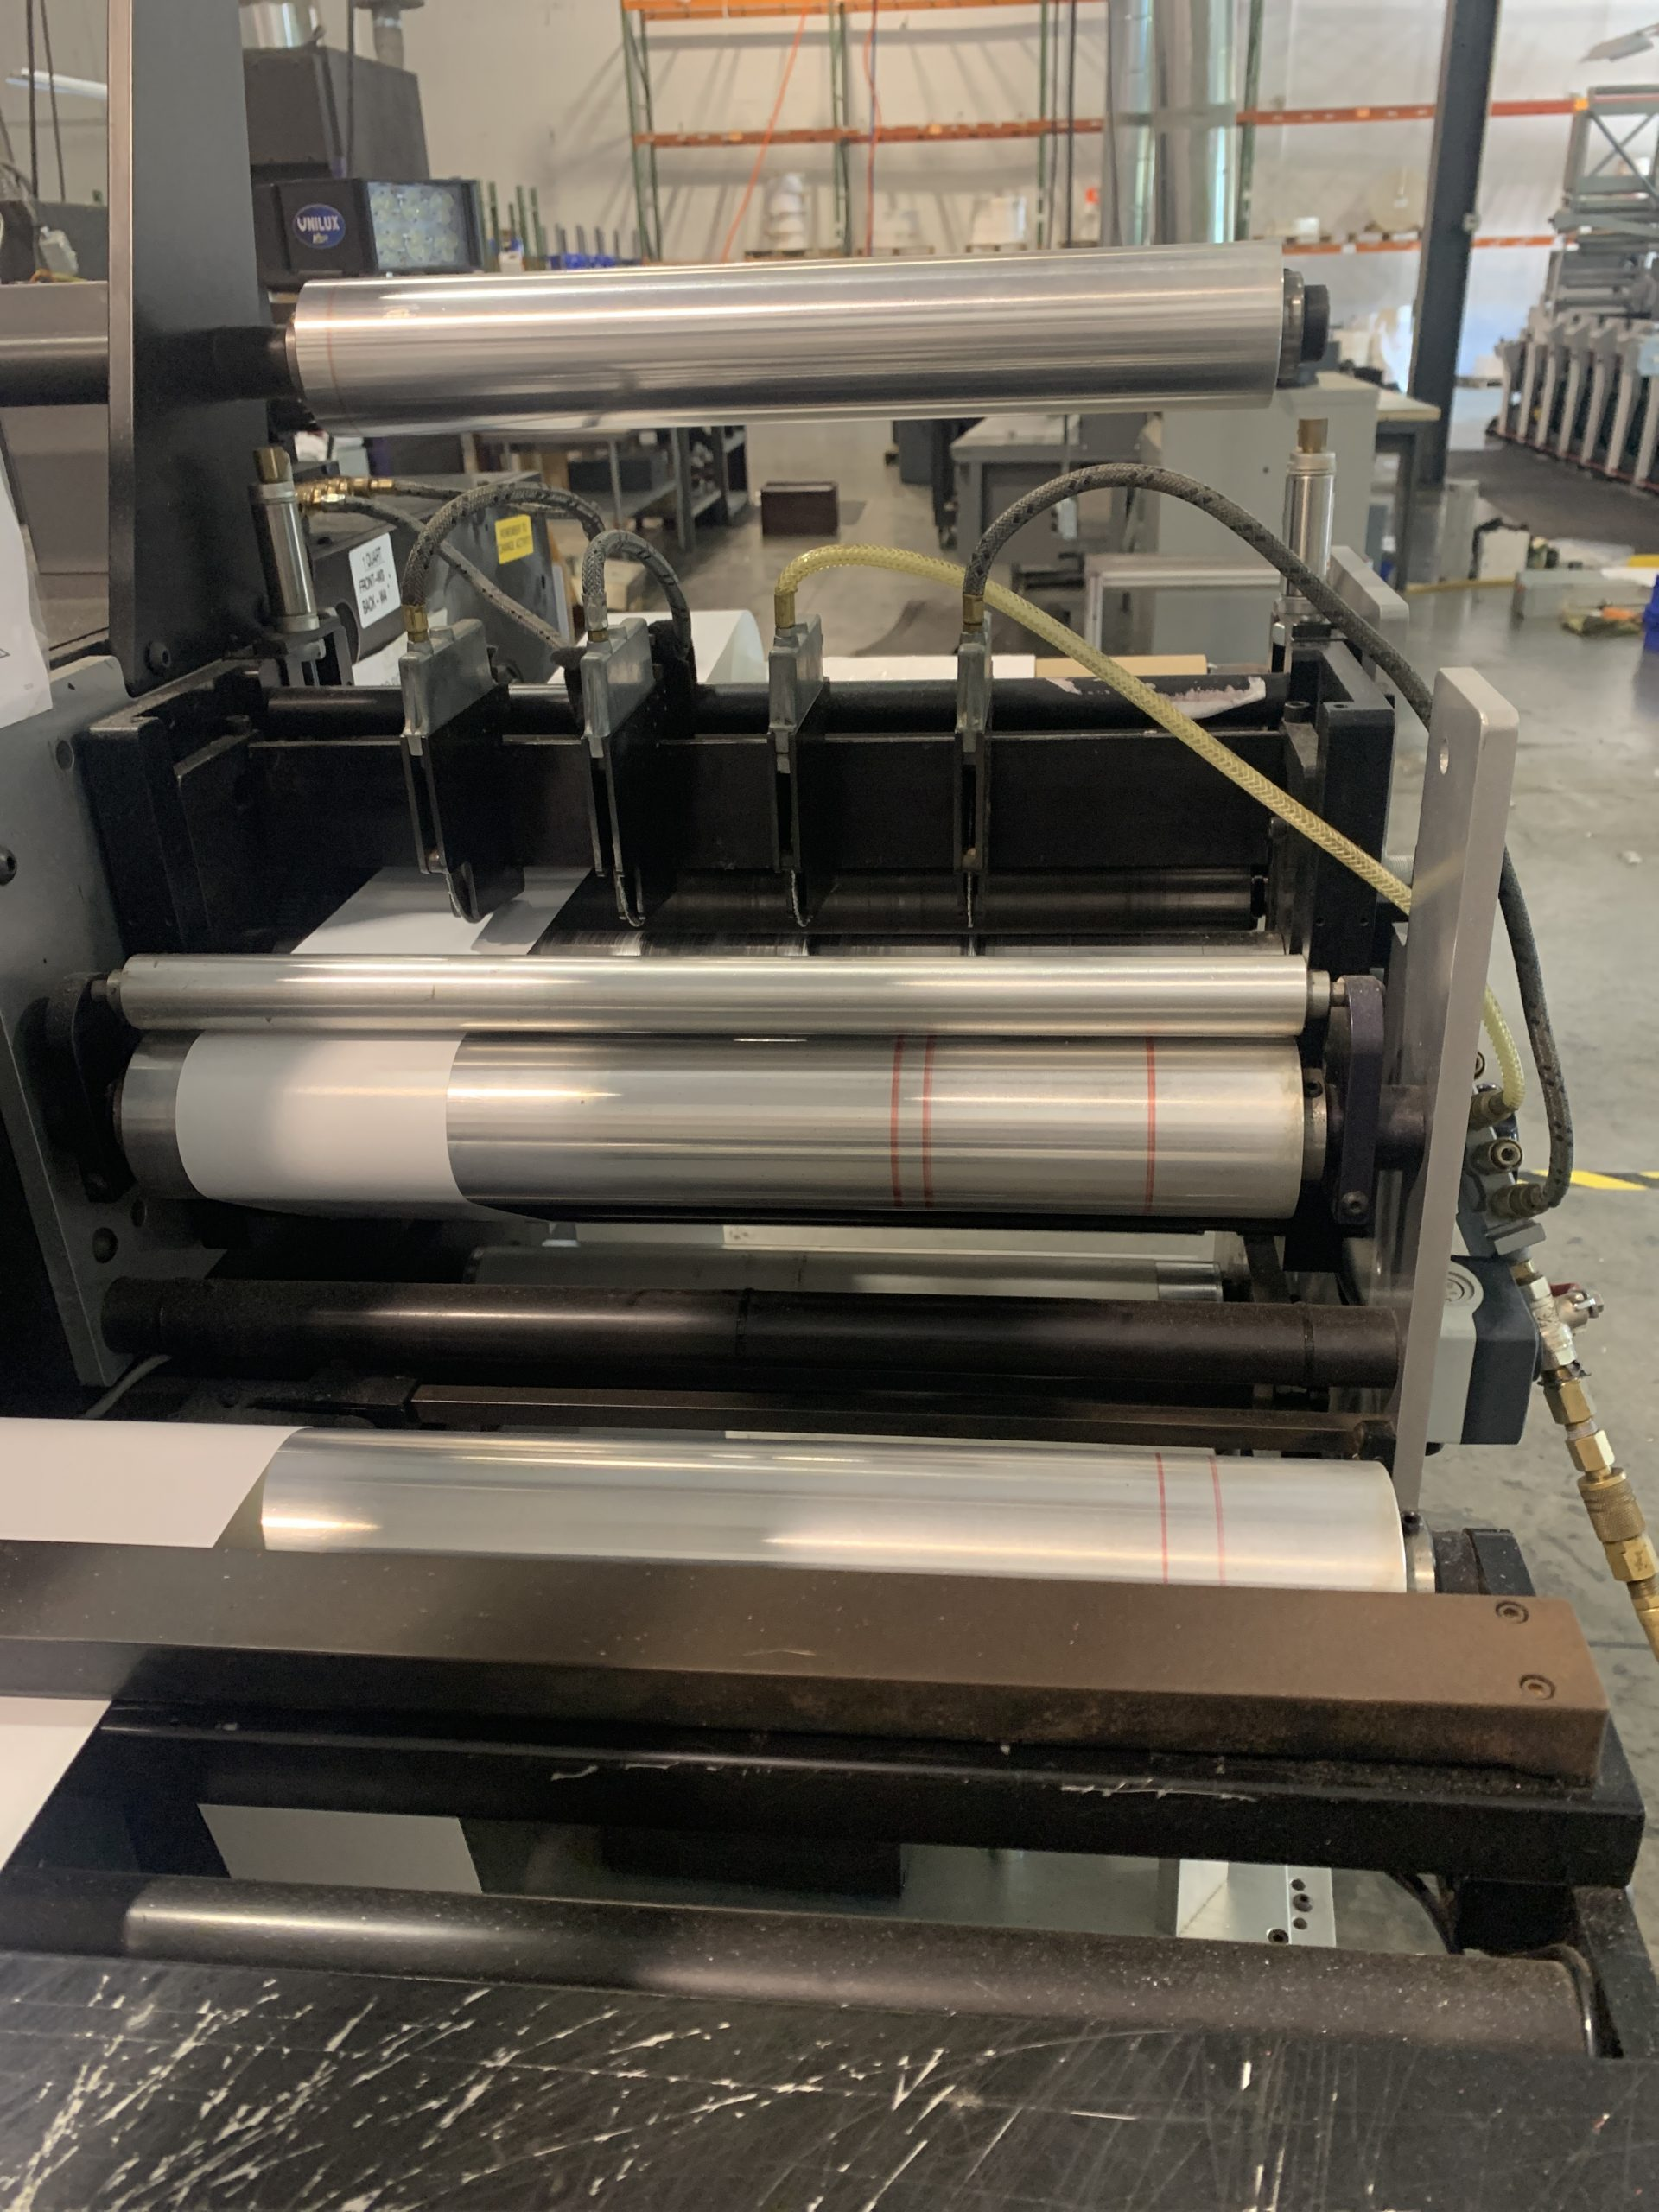 Aztech BSR4018 - Used Flexo Printing Presses and Used Flexographic Equipment-4